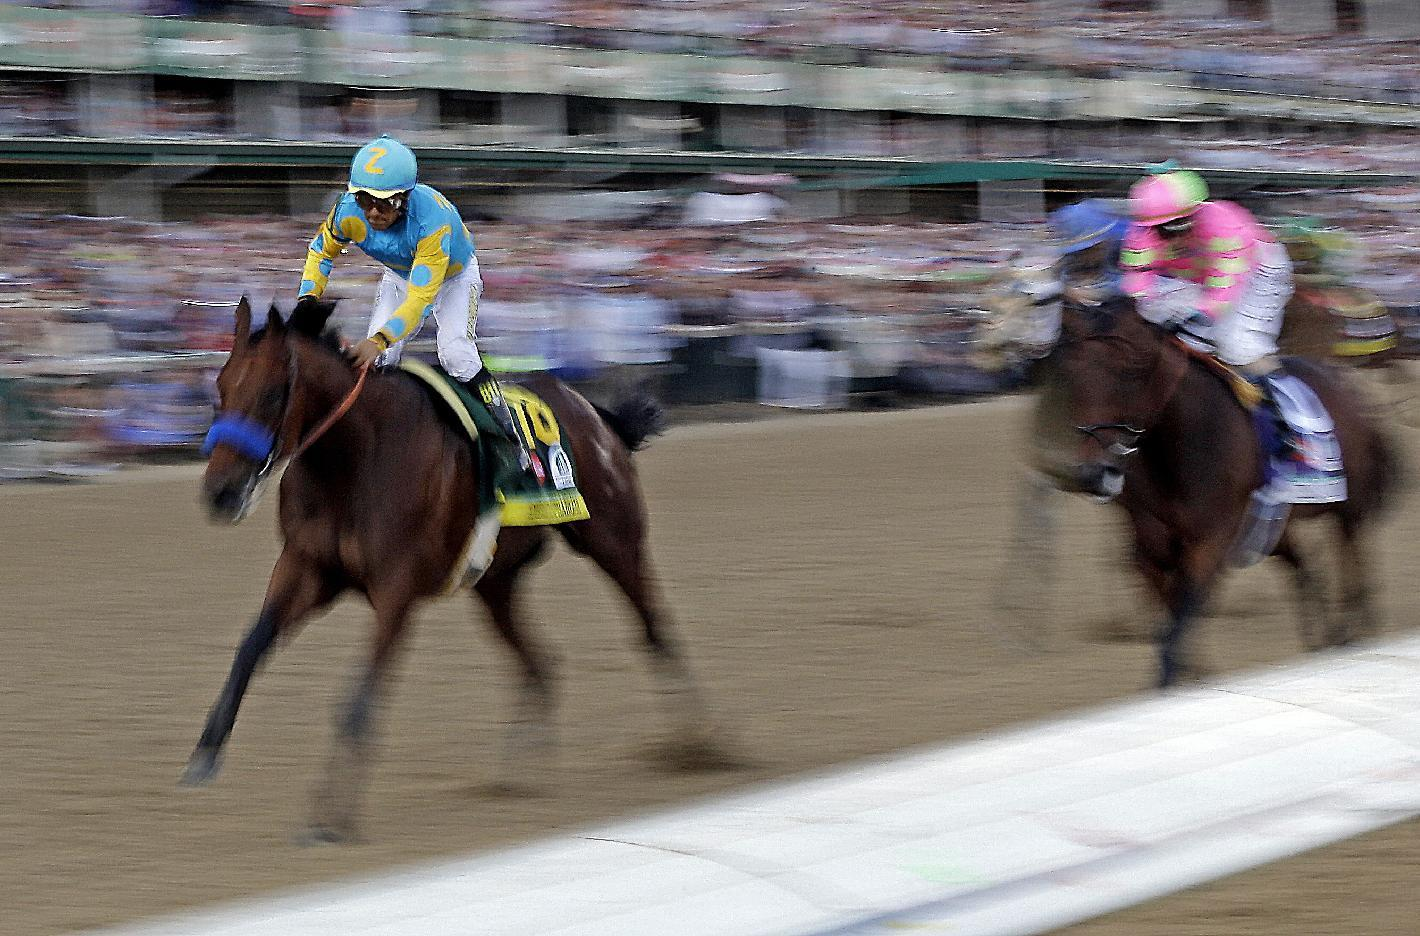 Espinoza on a Derby roll with 2nd straight wins, 3 overall